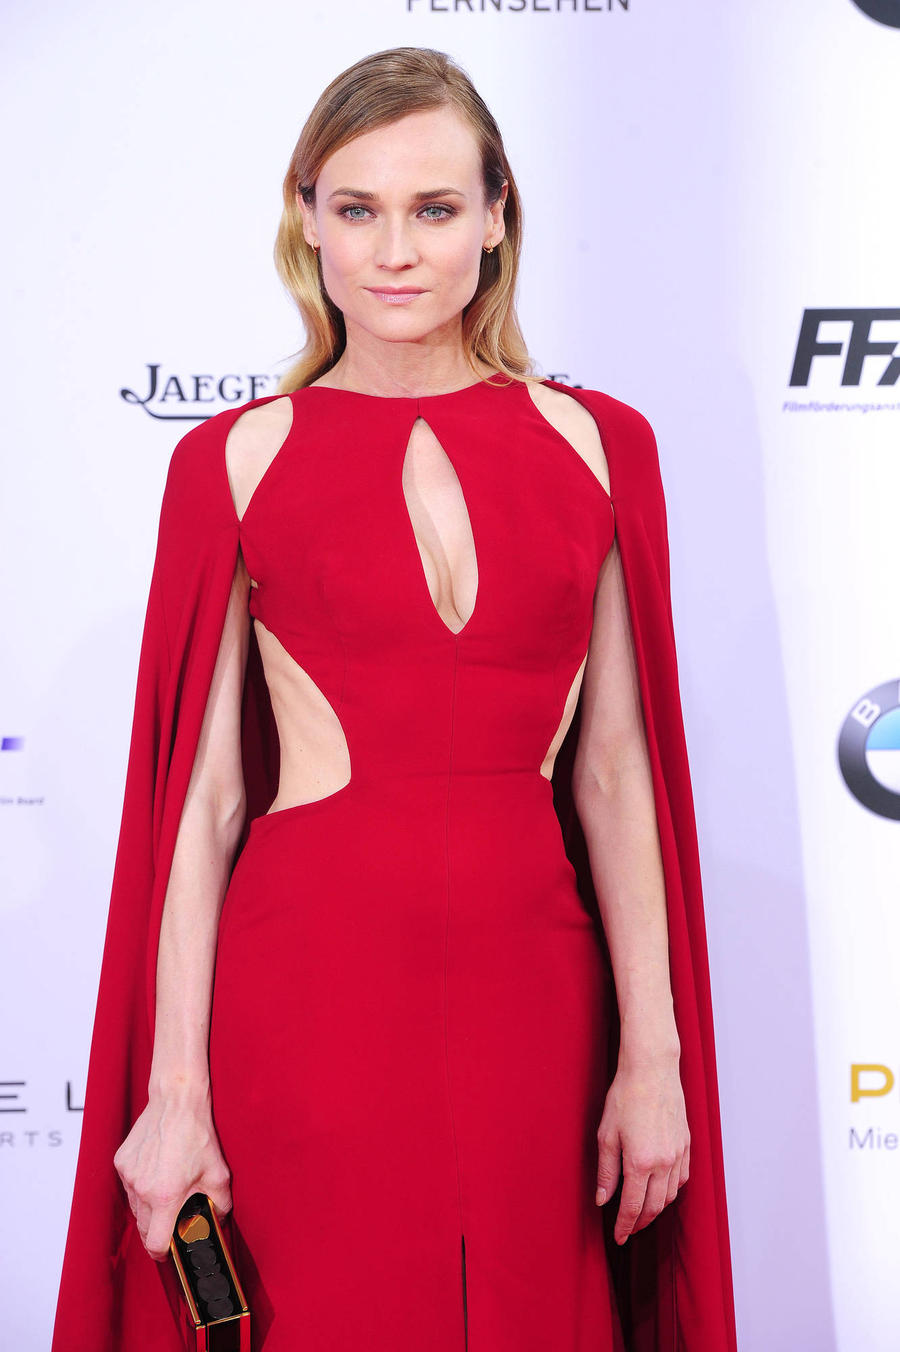 Diane Kruger Assures Fans She Is 'Good' After Break Up